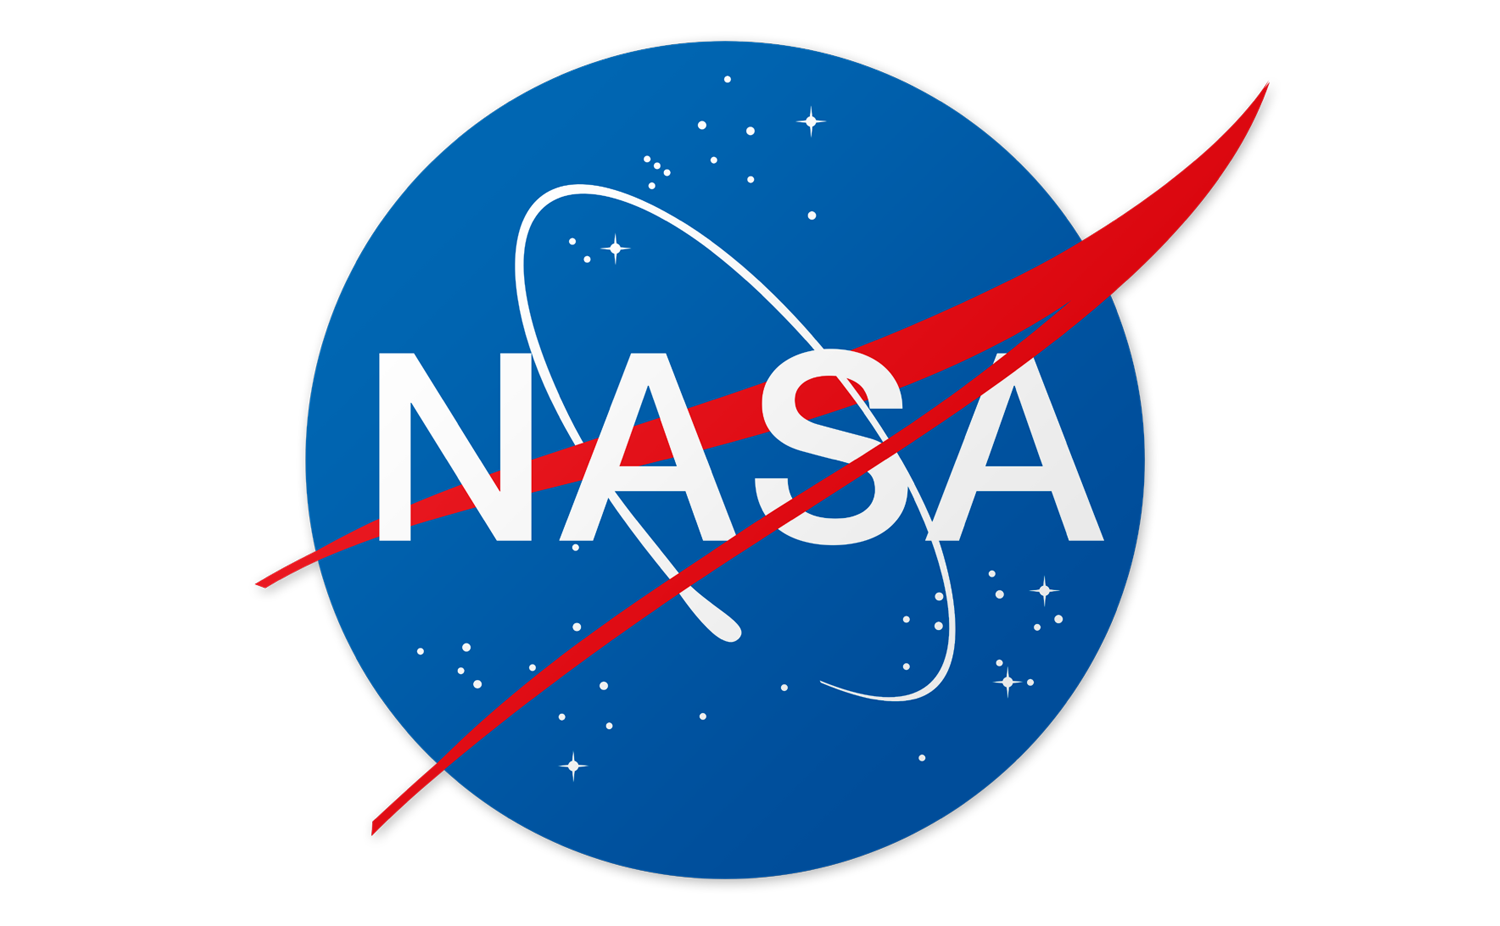 Nasa Logo Wallpaper on Nasa Wallpaper Hd